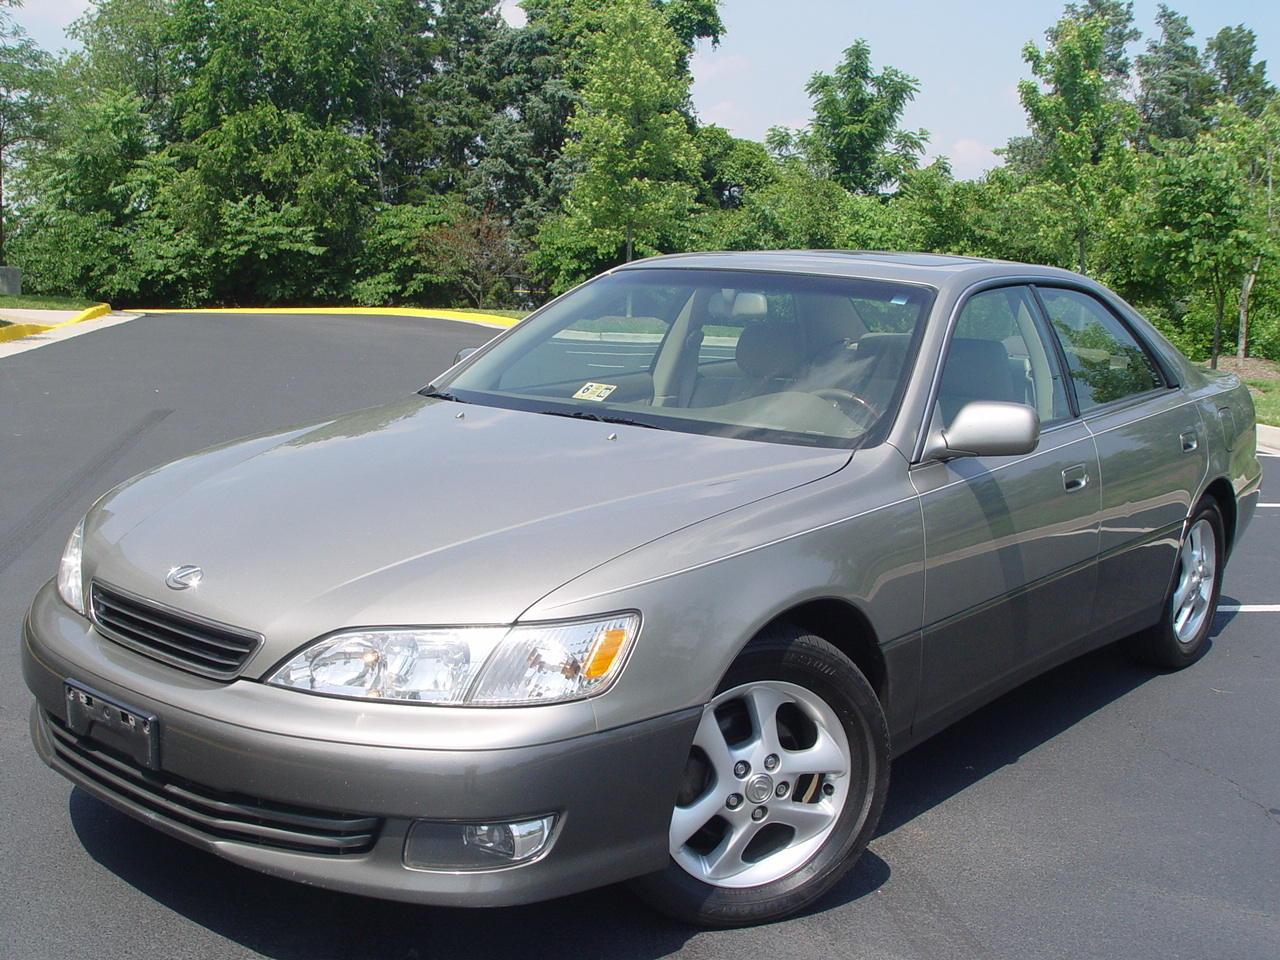 2001 Lexus ES 300 Owners Manual